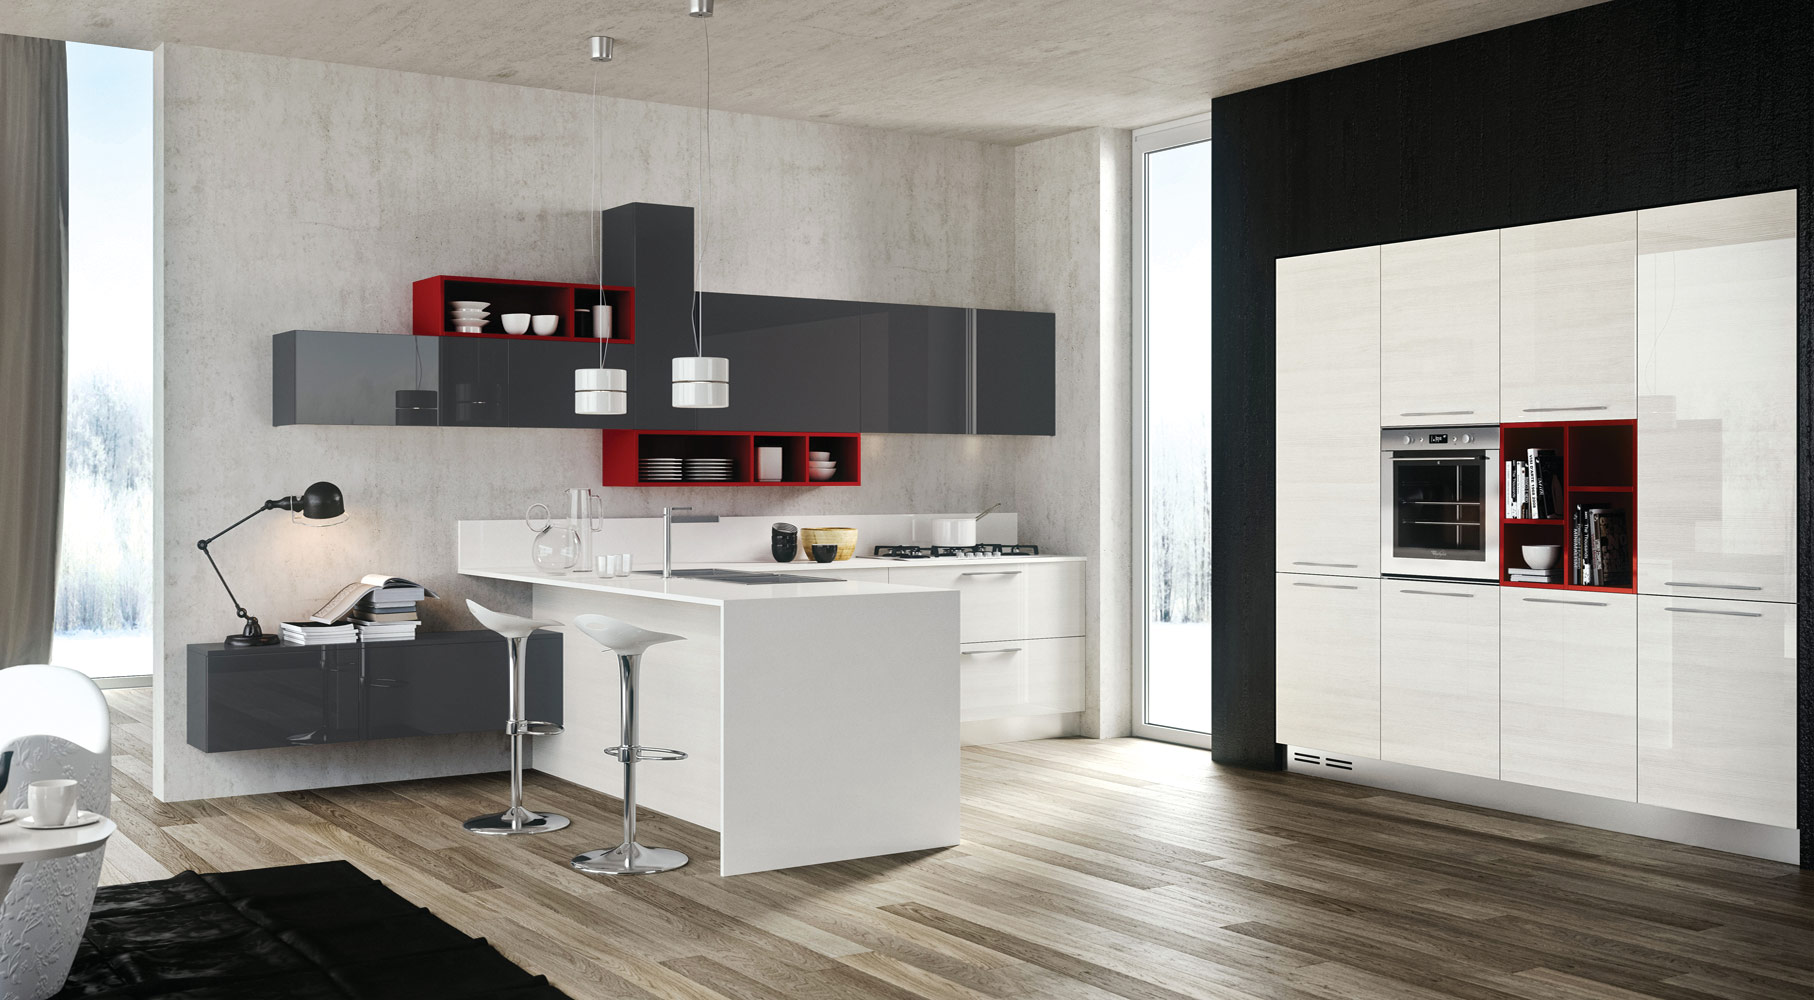 Red gray white kitchen interior design ideas for Cuisine contemporaine design